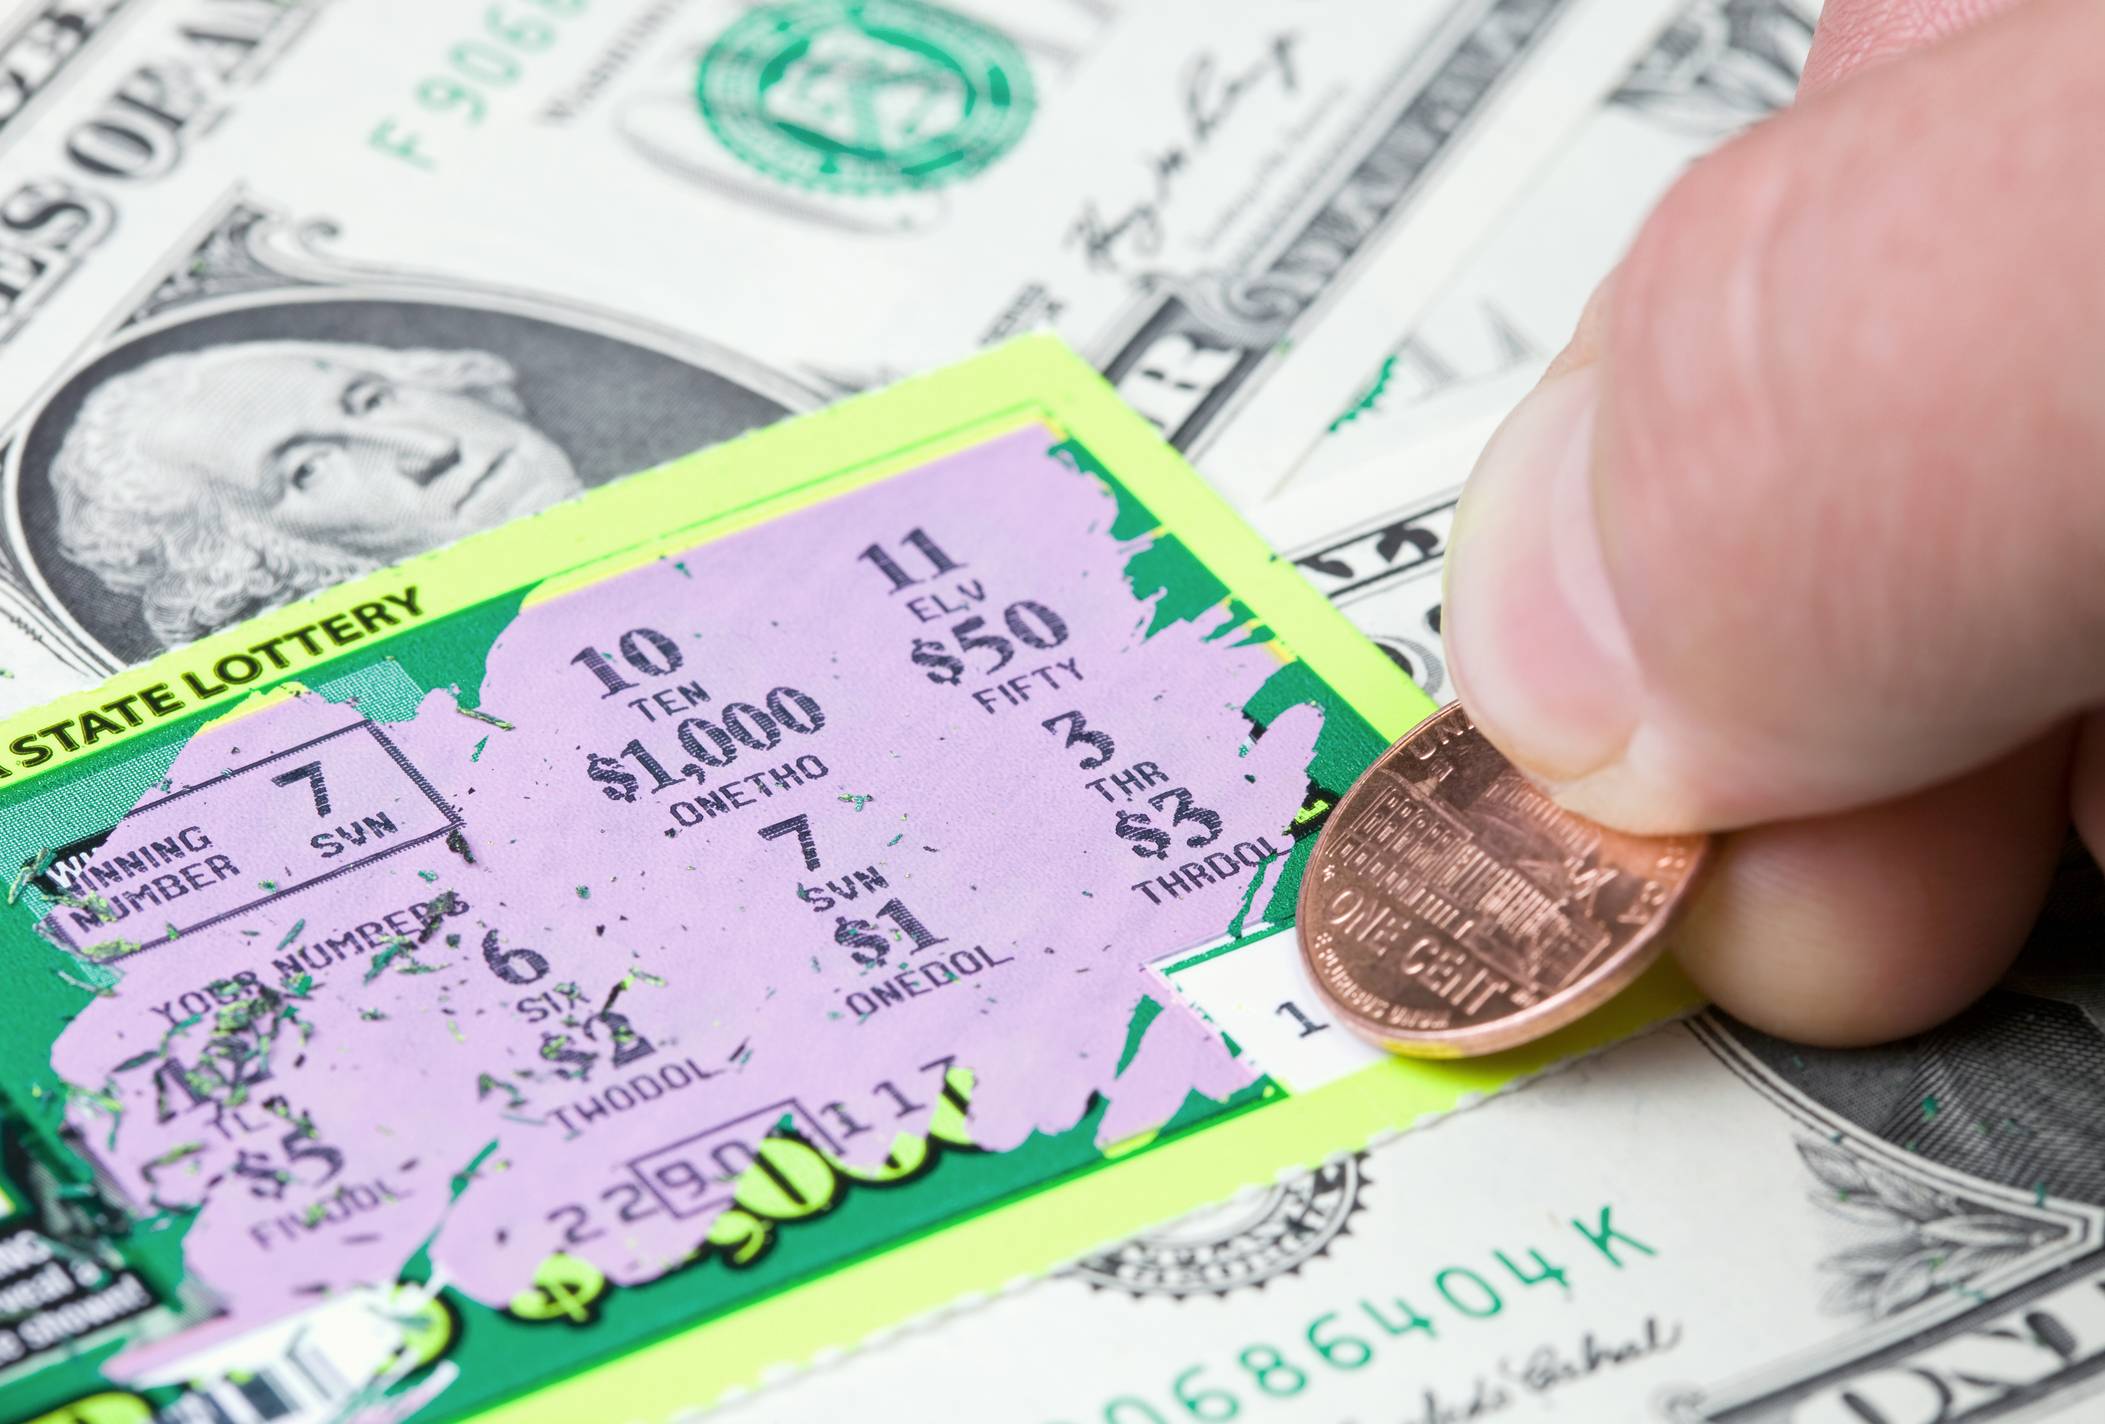 Pollard Banknote Expanding Rapidly as Lottery Ticket Printer